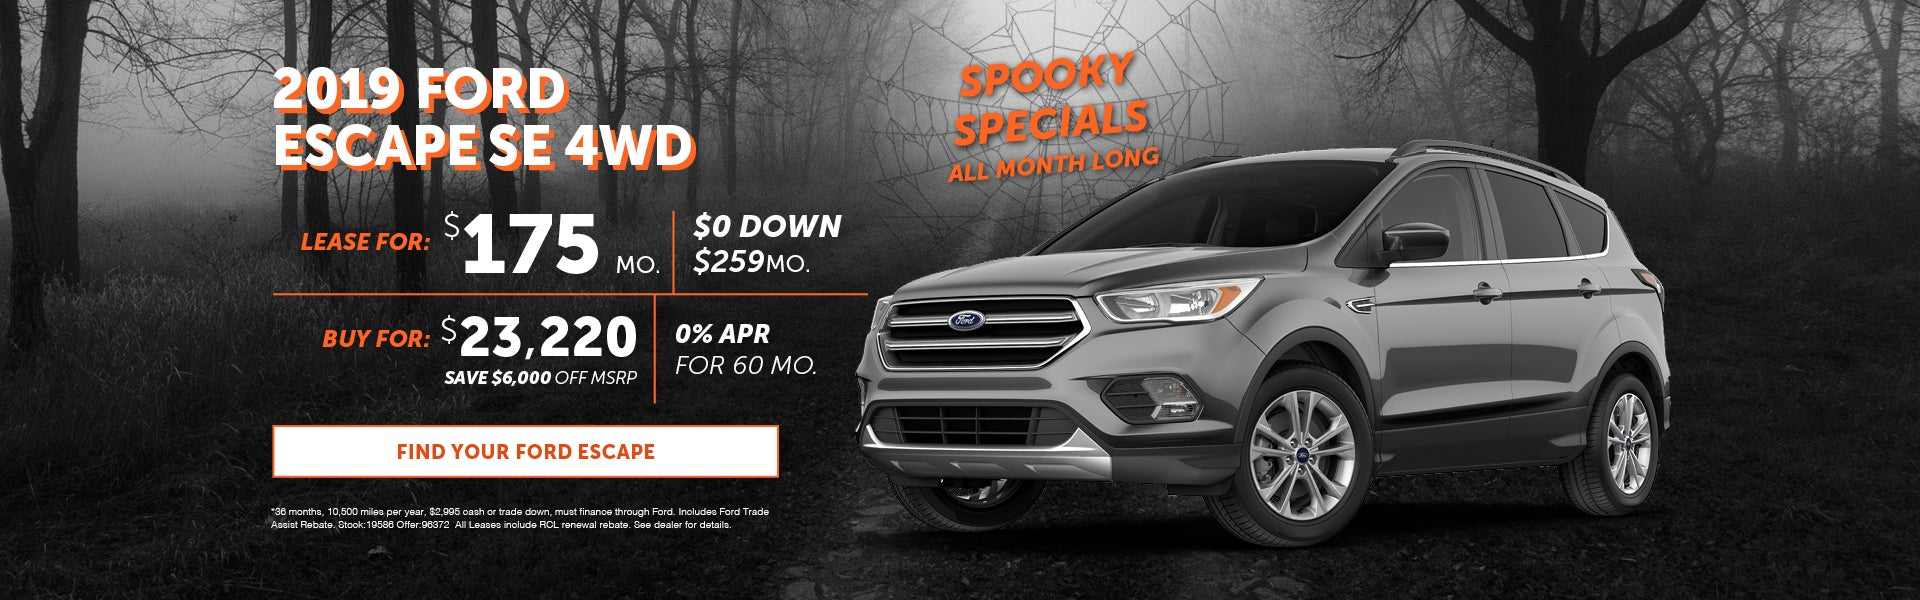 Ford Escape Lease Deals >> Ford Escape Deals And Specials In Ma Ford Escape Lease